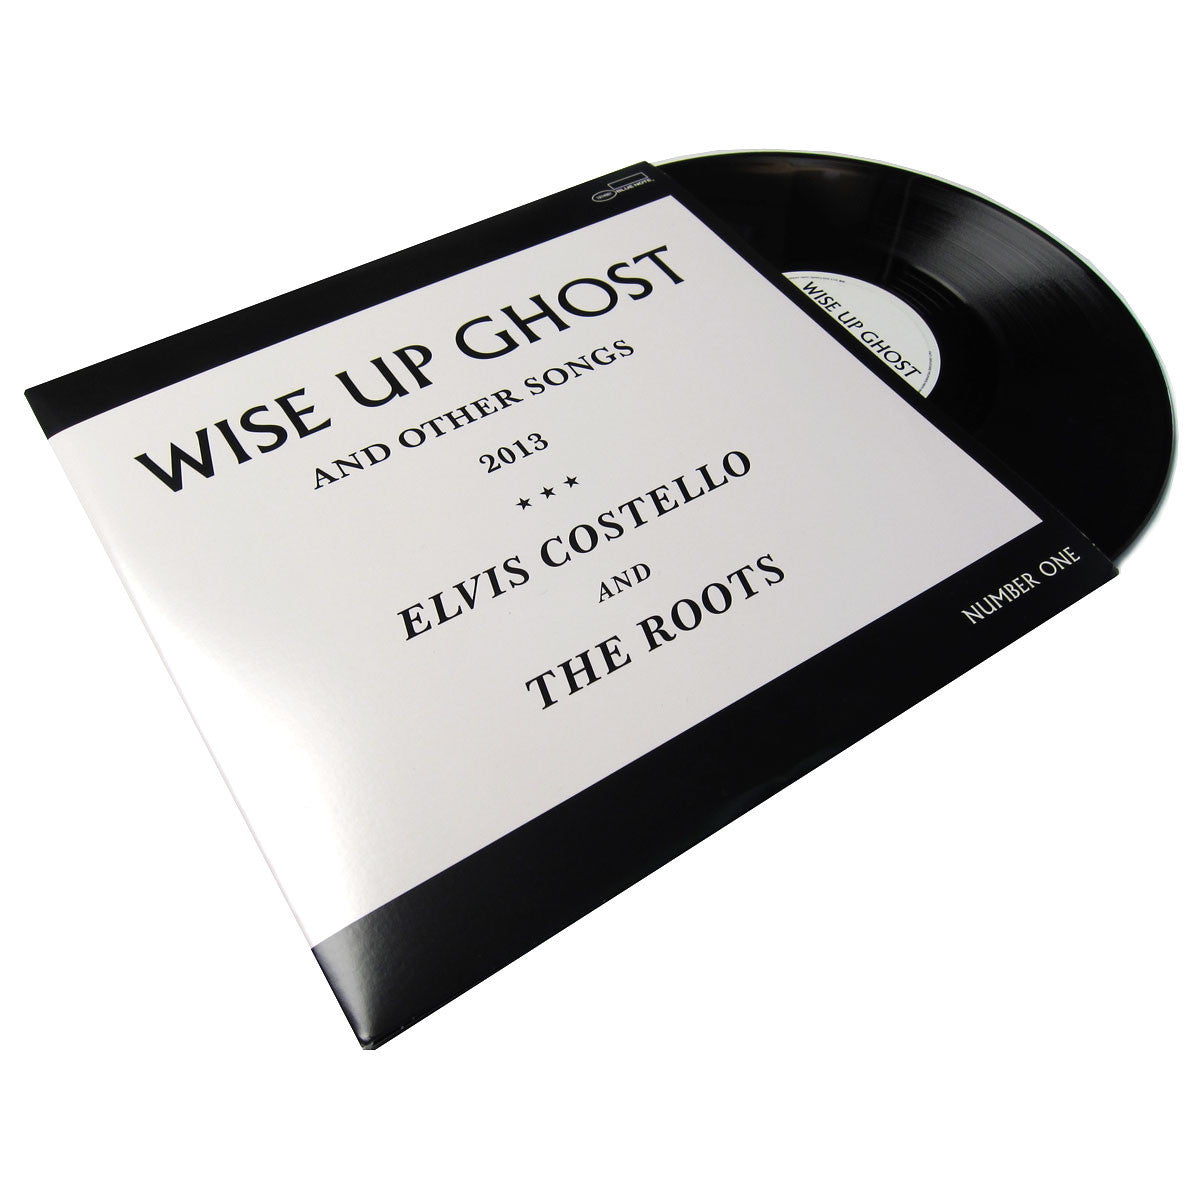 Elvis Costello & The Roots: Wise Up Ghost (180g, Free MP3) 2LP